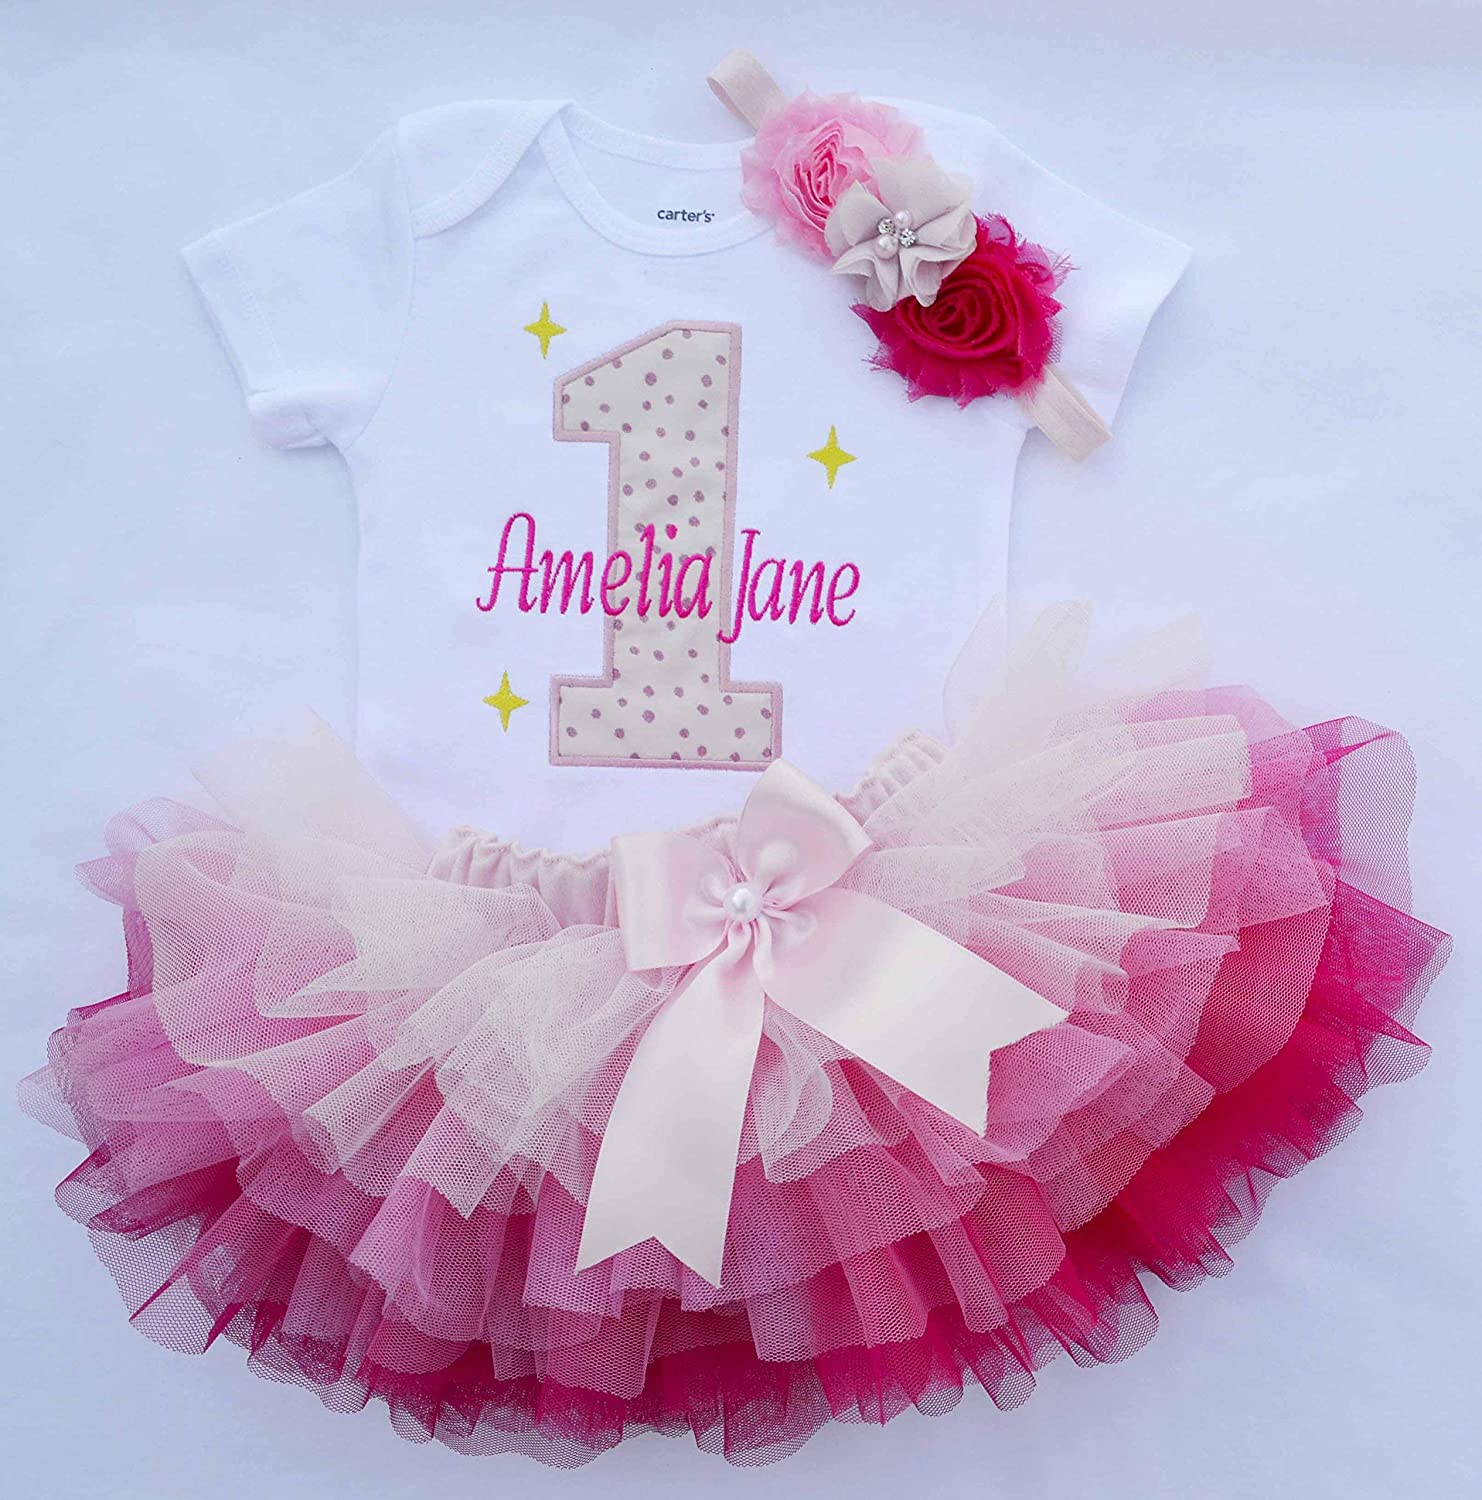 e5f31c4f0 Amazon.com: First birthday Girl outfit,Girls Cake Smash Outfit,Baby Girl  1st Birthday outfit,1st birthday tutu,twinkle twinkle star birthday girl  outfit: ...